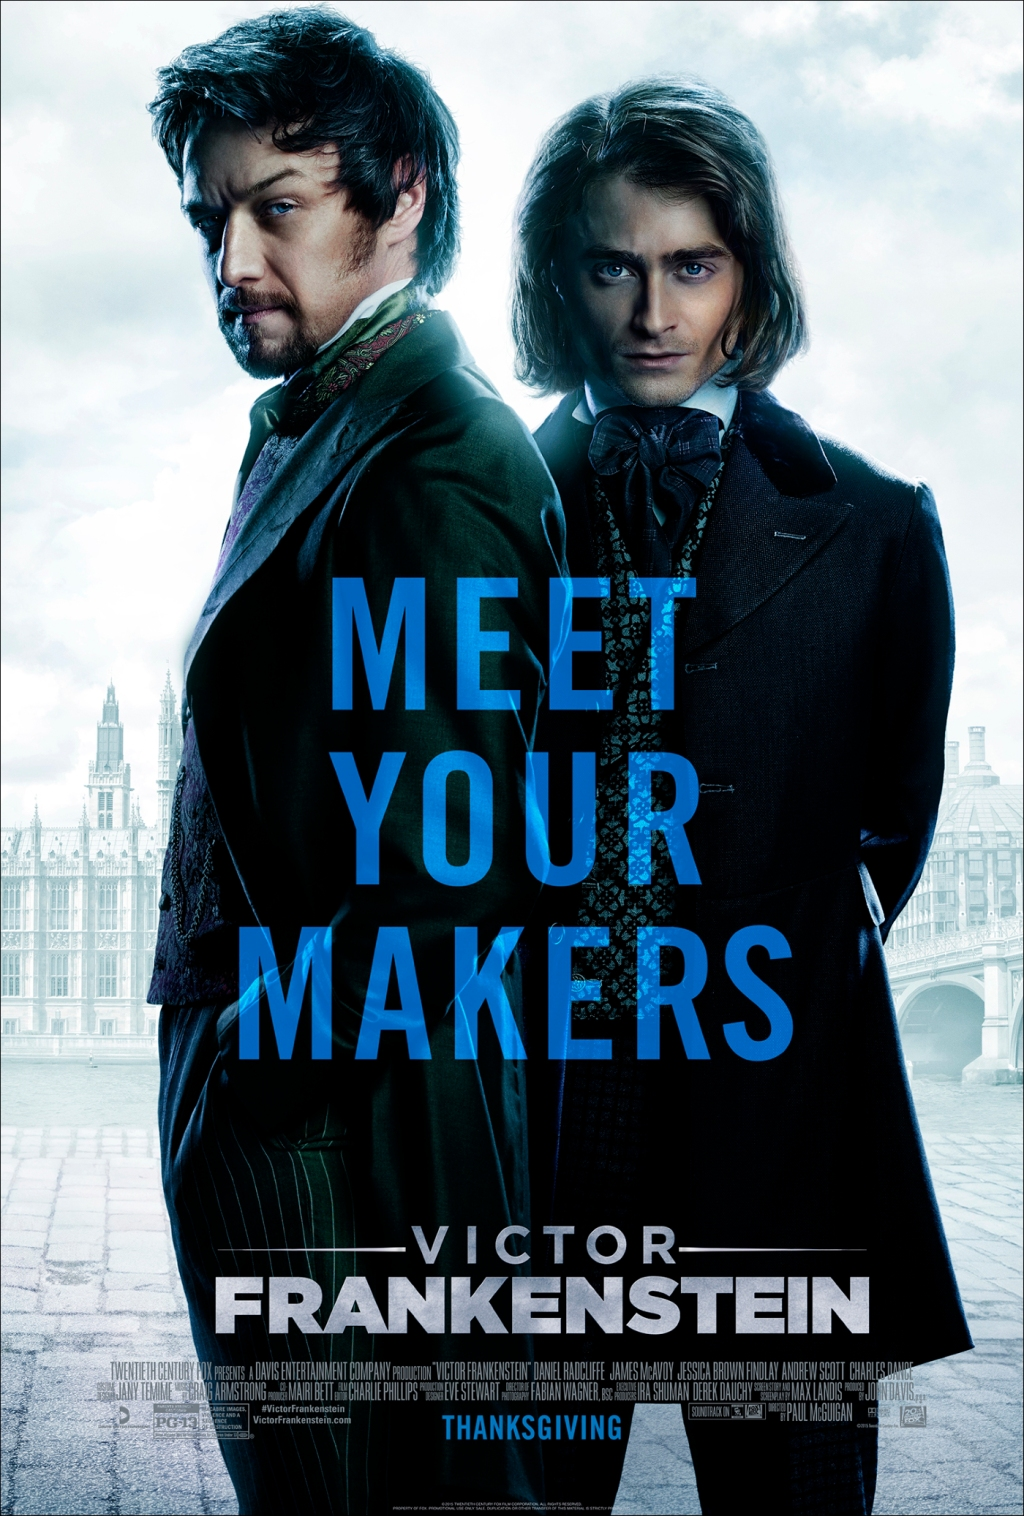 victor frankenstein – rated pg-13 – matinee chat with kathy kaiser